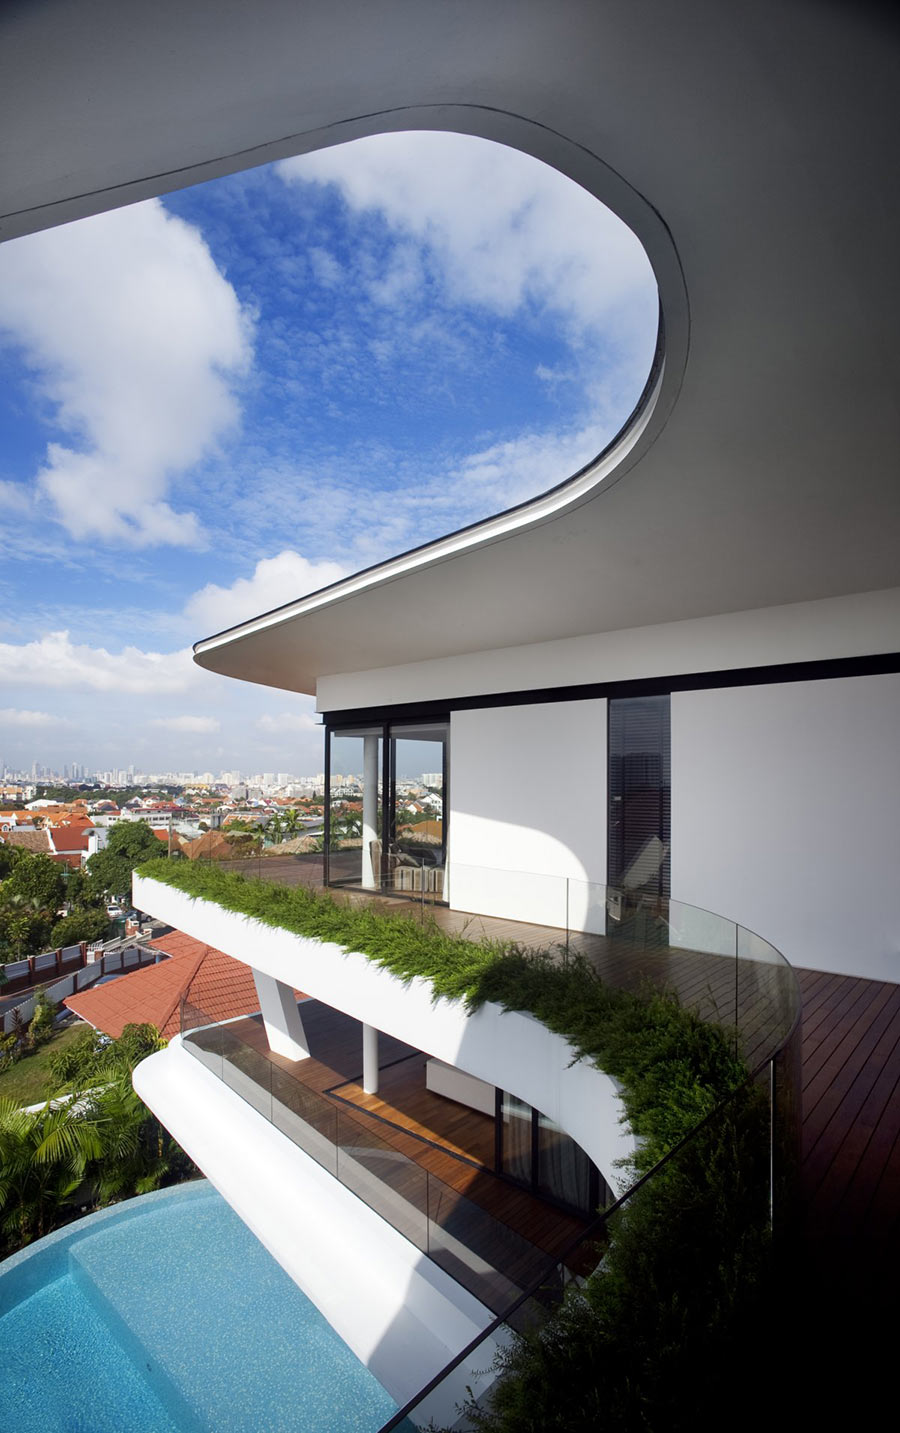 Balcony, Ninety7 @ Siglap Road House by Aamer Architects